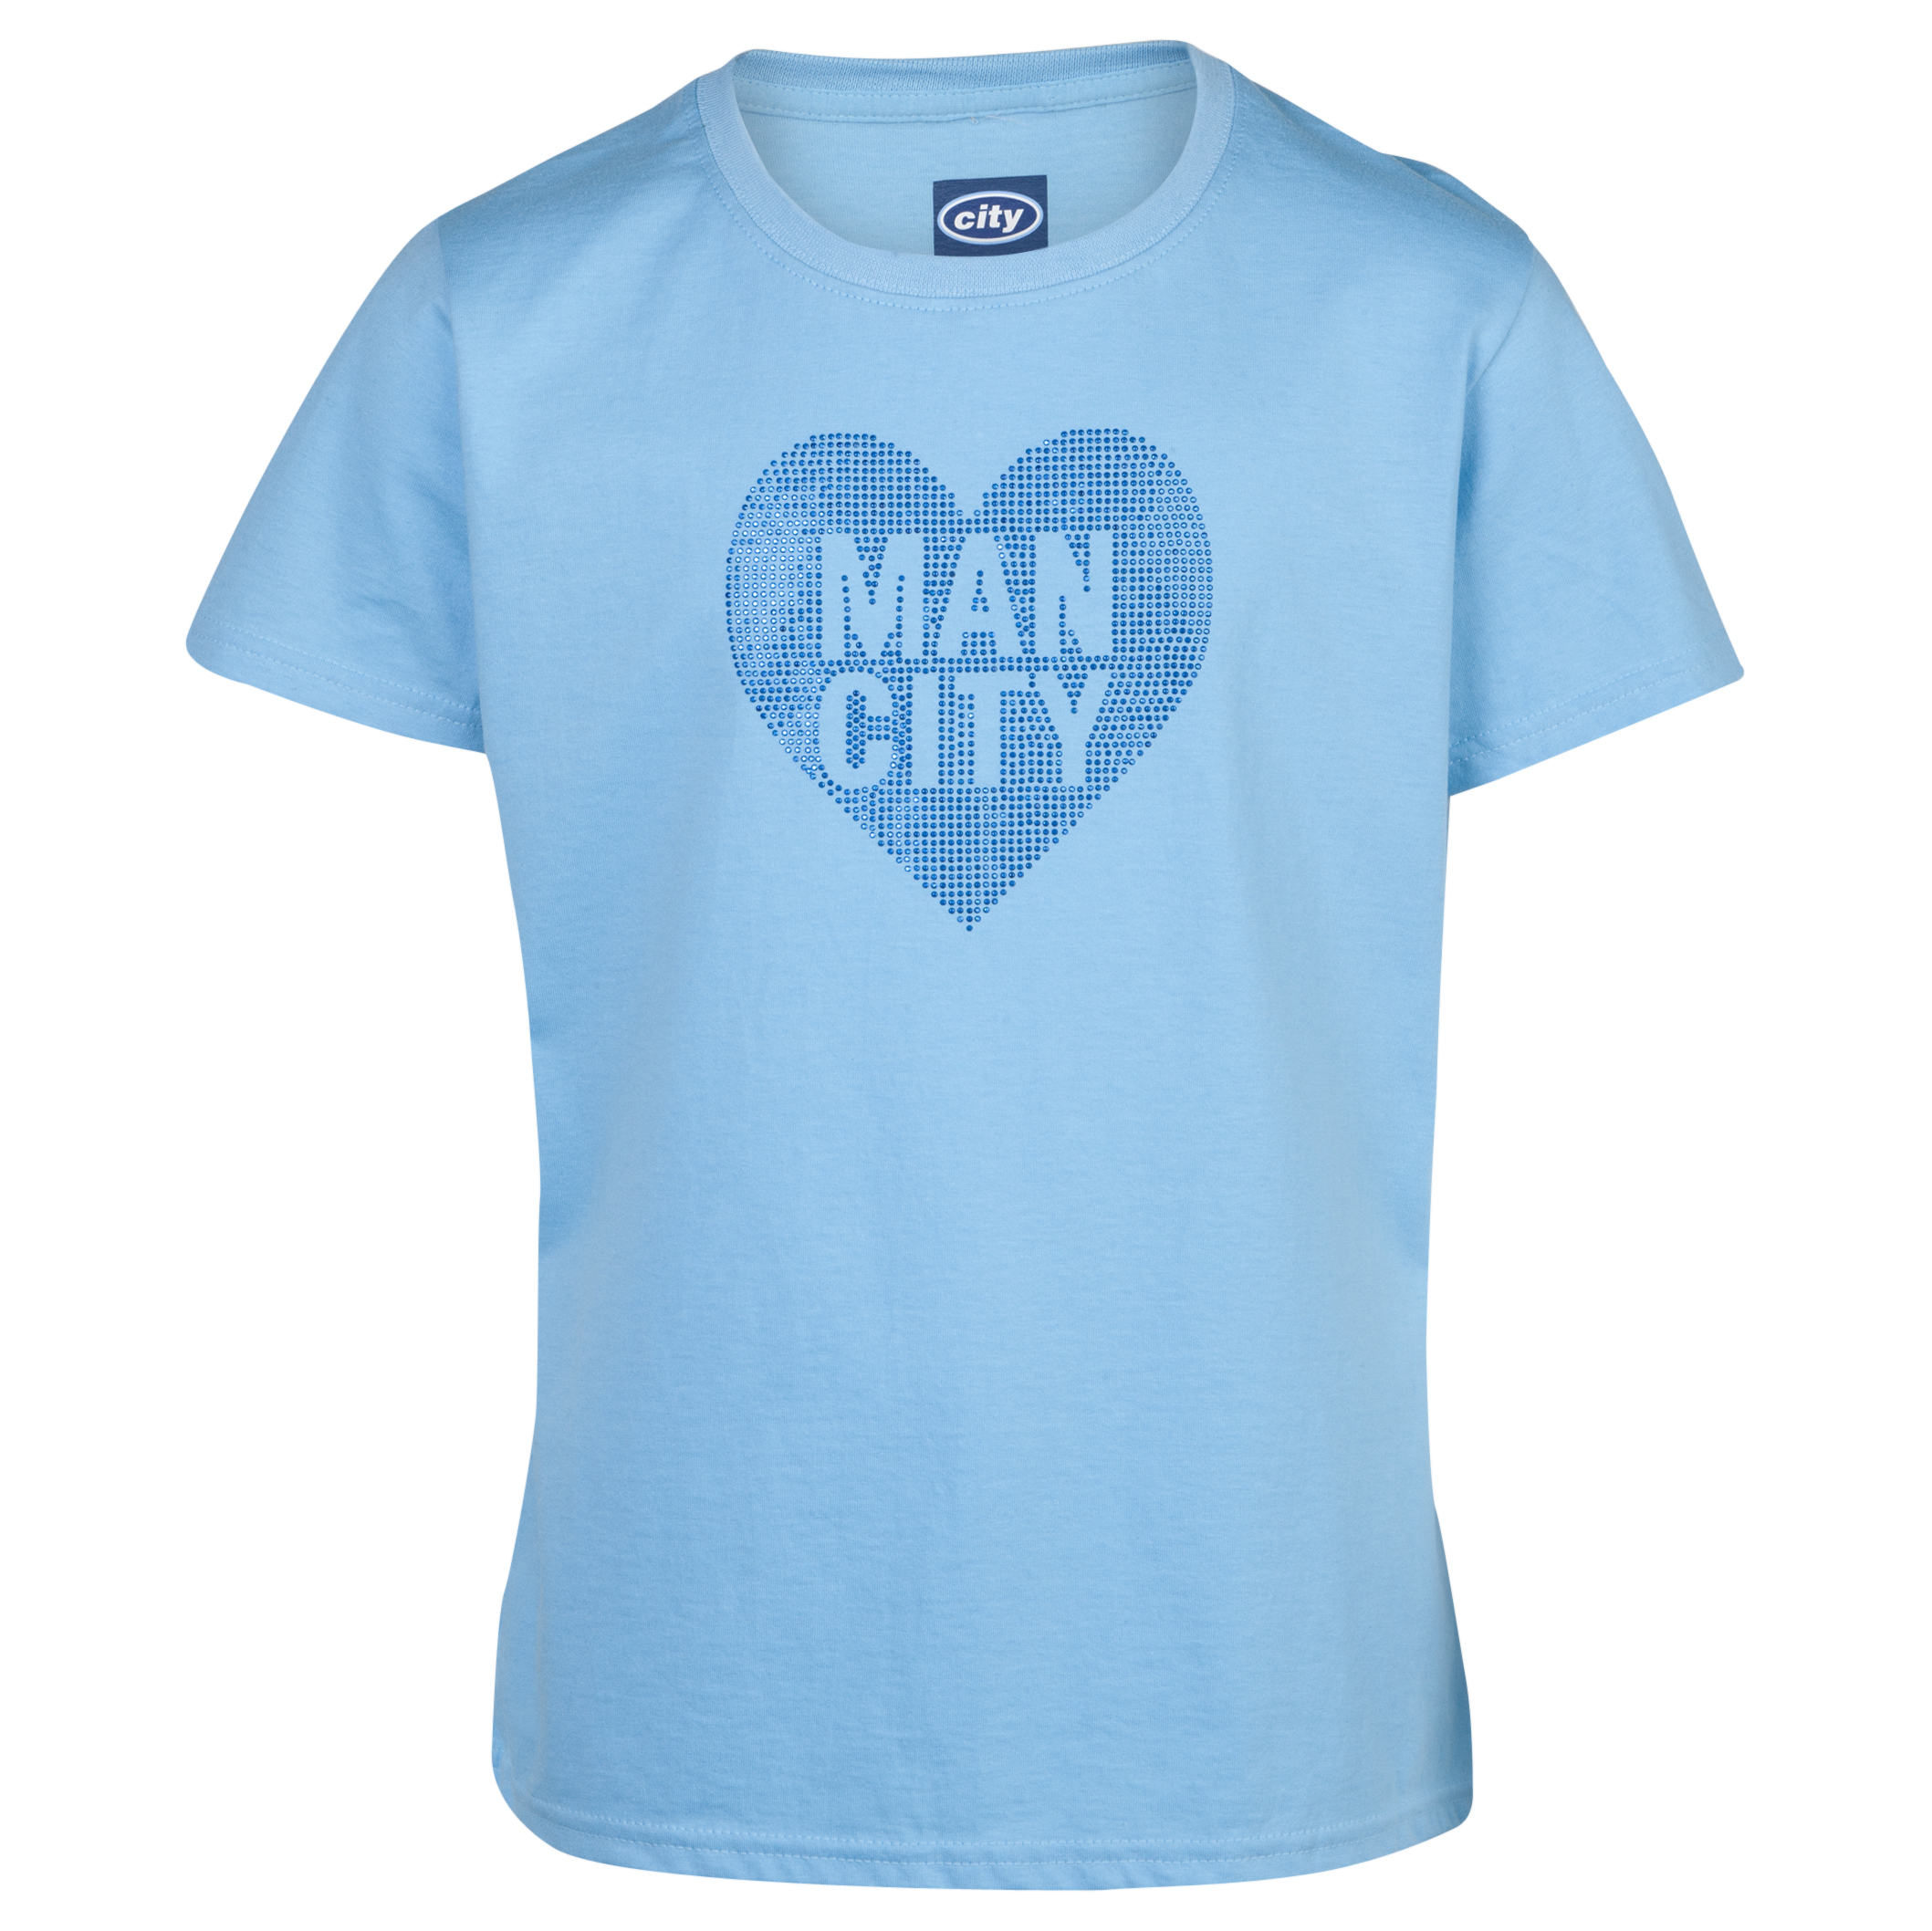 Manchester City Rhinestone TShirt -Girls Sky Blue